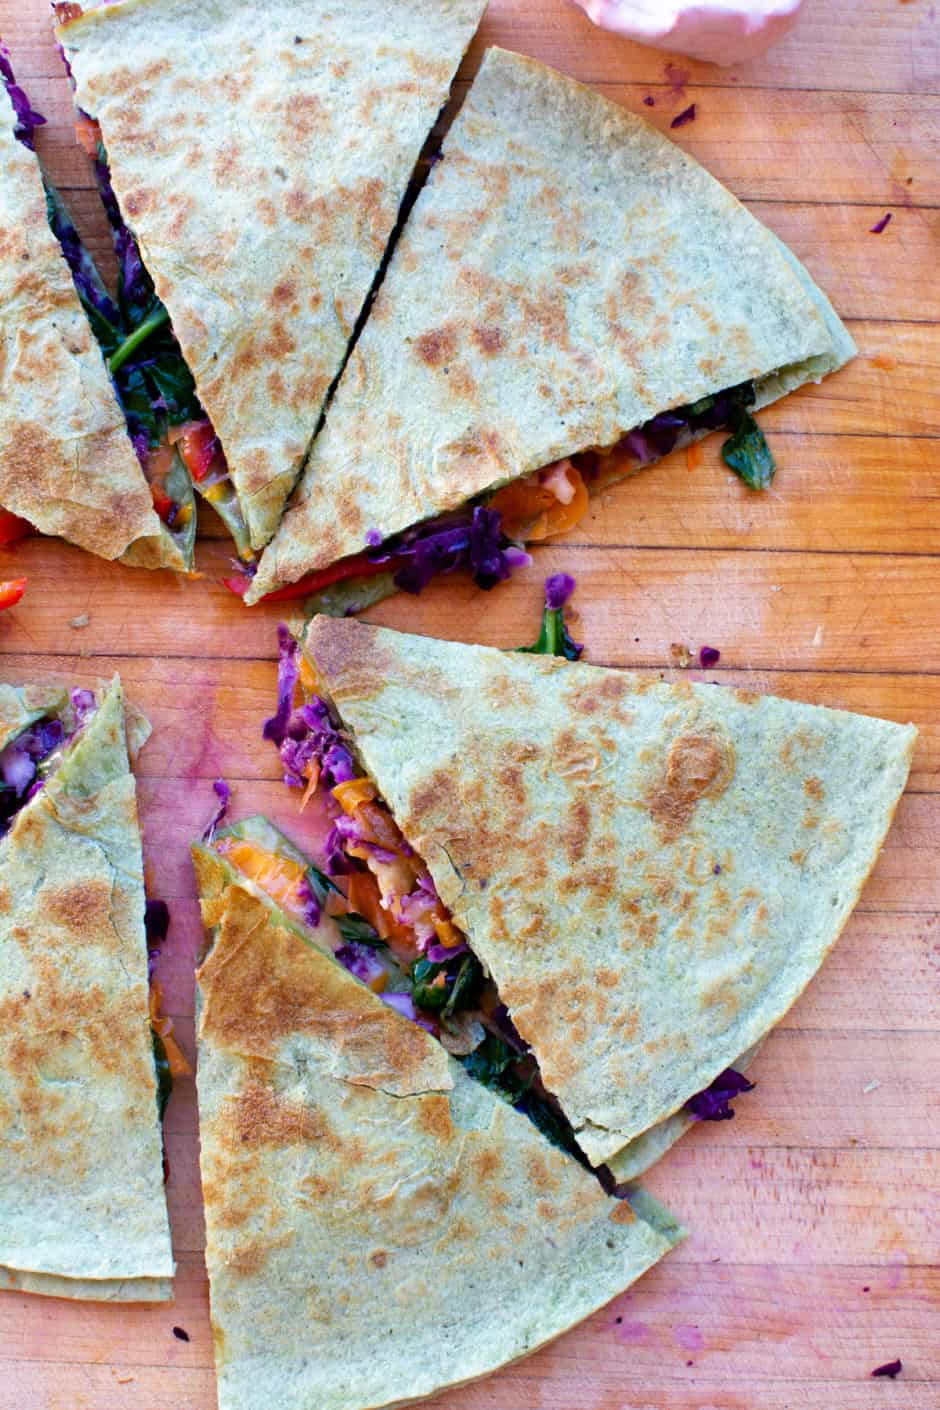 This super yummy Rainbow Veggie Quesadilla filled with a boatload of colorful vegetables and lots of melted cheese. A quick and easy recipe that is a clear winner for the whole family. Keep these veggies in the fridge for a healthy meal any time hunger strikes! #quesadilla #quesadillarecipe #mexicanquesadillas #veggiequesadilla #ad